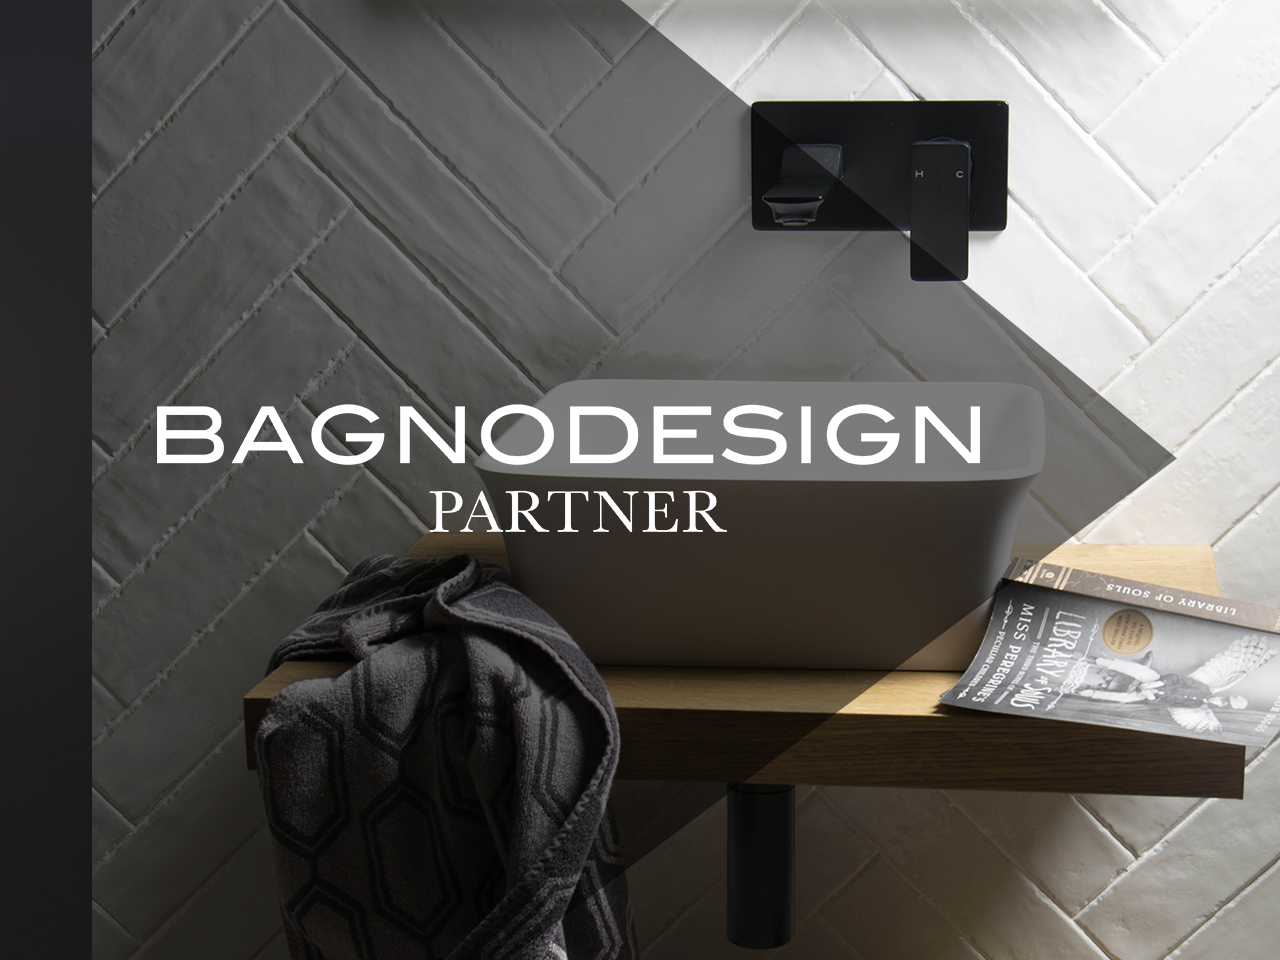 Bagno Design London Nuevo Programa Bagnodesign London Partner La Casa Ead